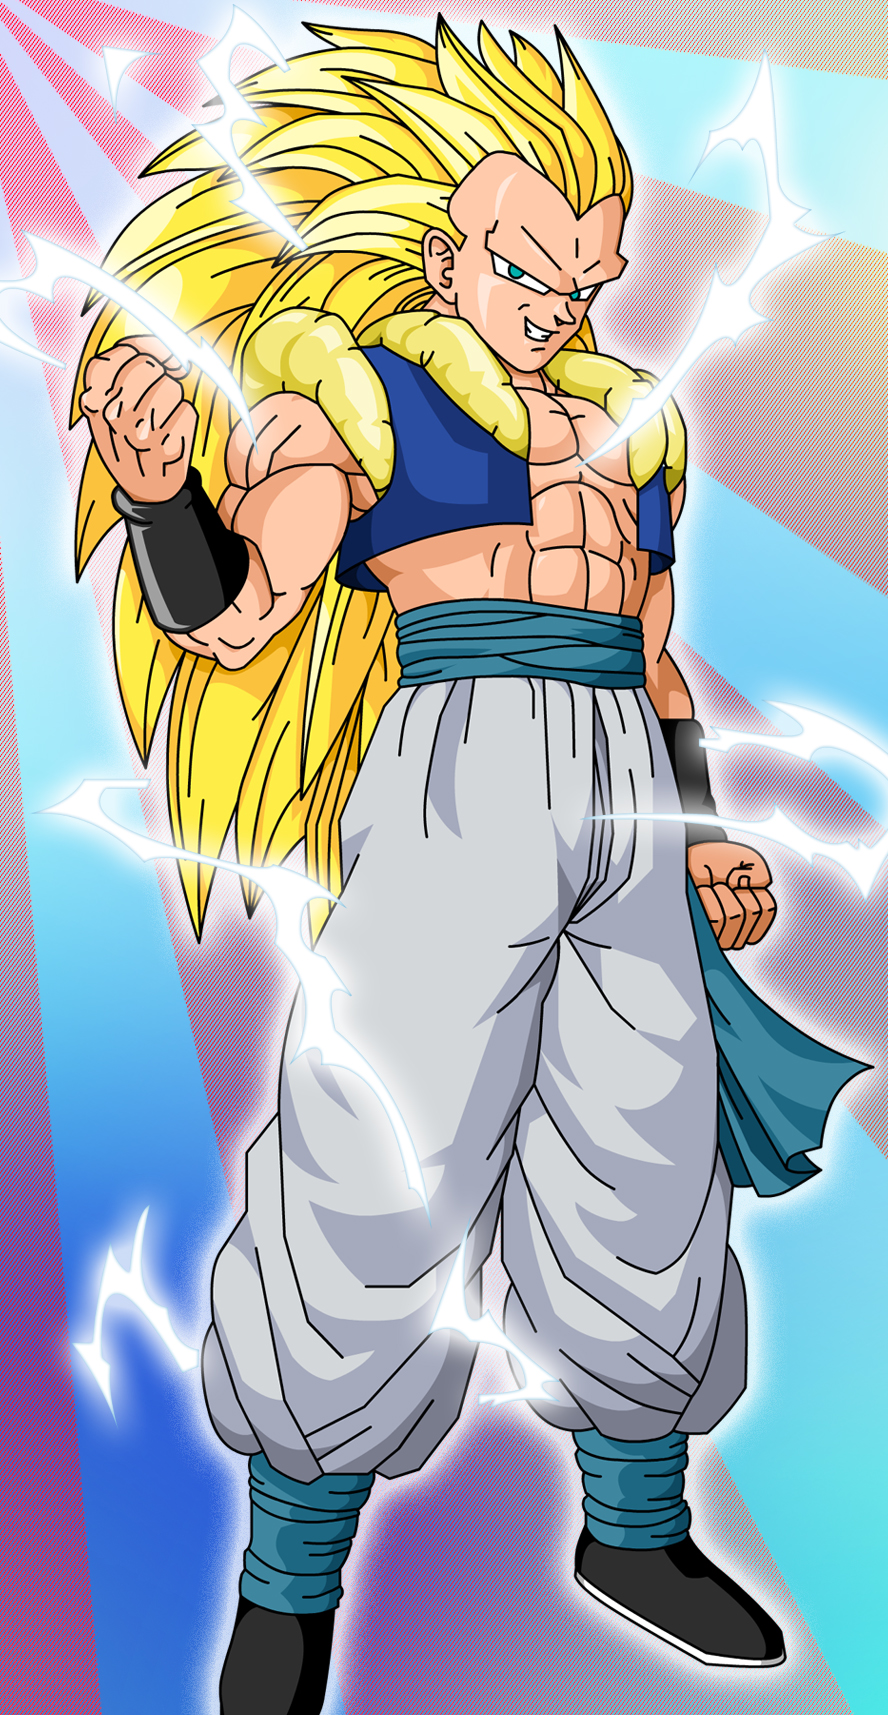 Super saiyan 3 dragon ball af fanon wiki fandom powered by wikia super saiyan 3 thecheapjerseys Image collections